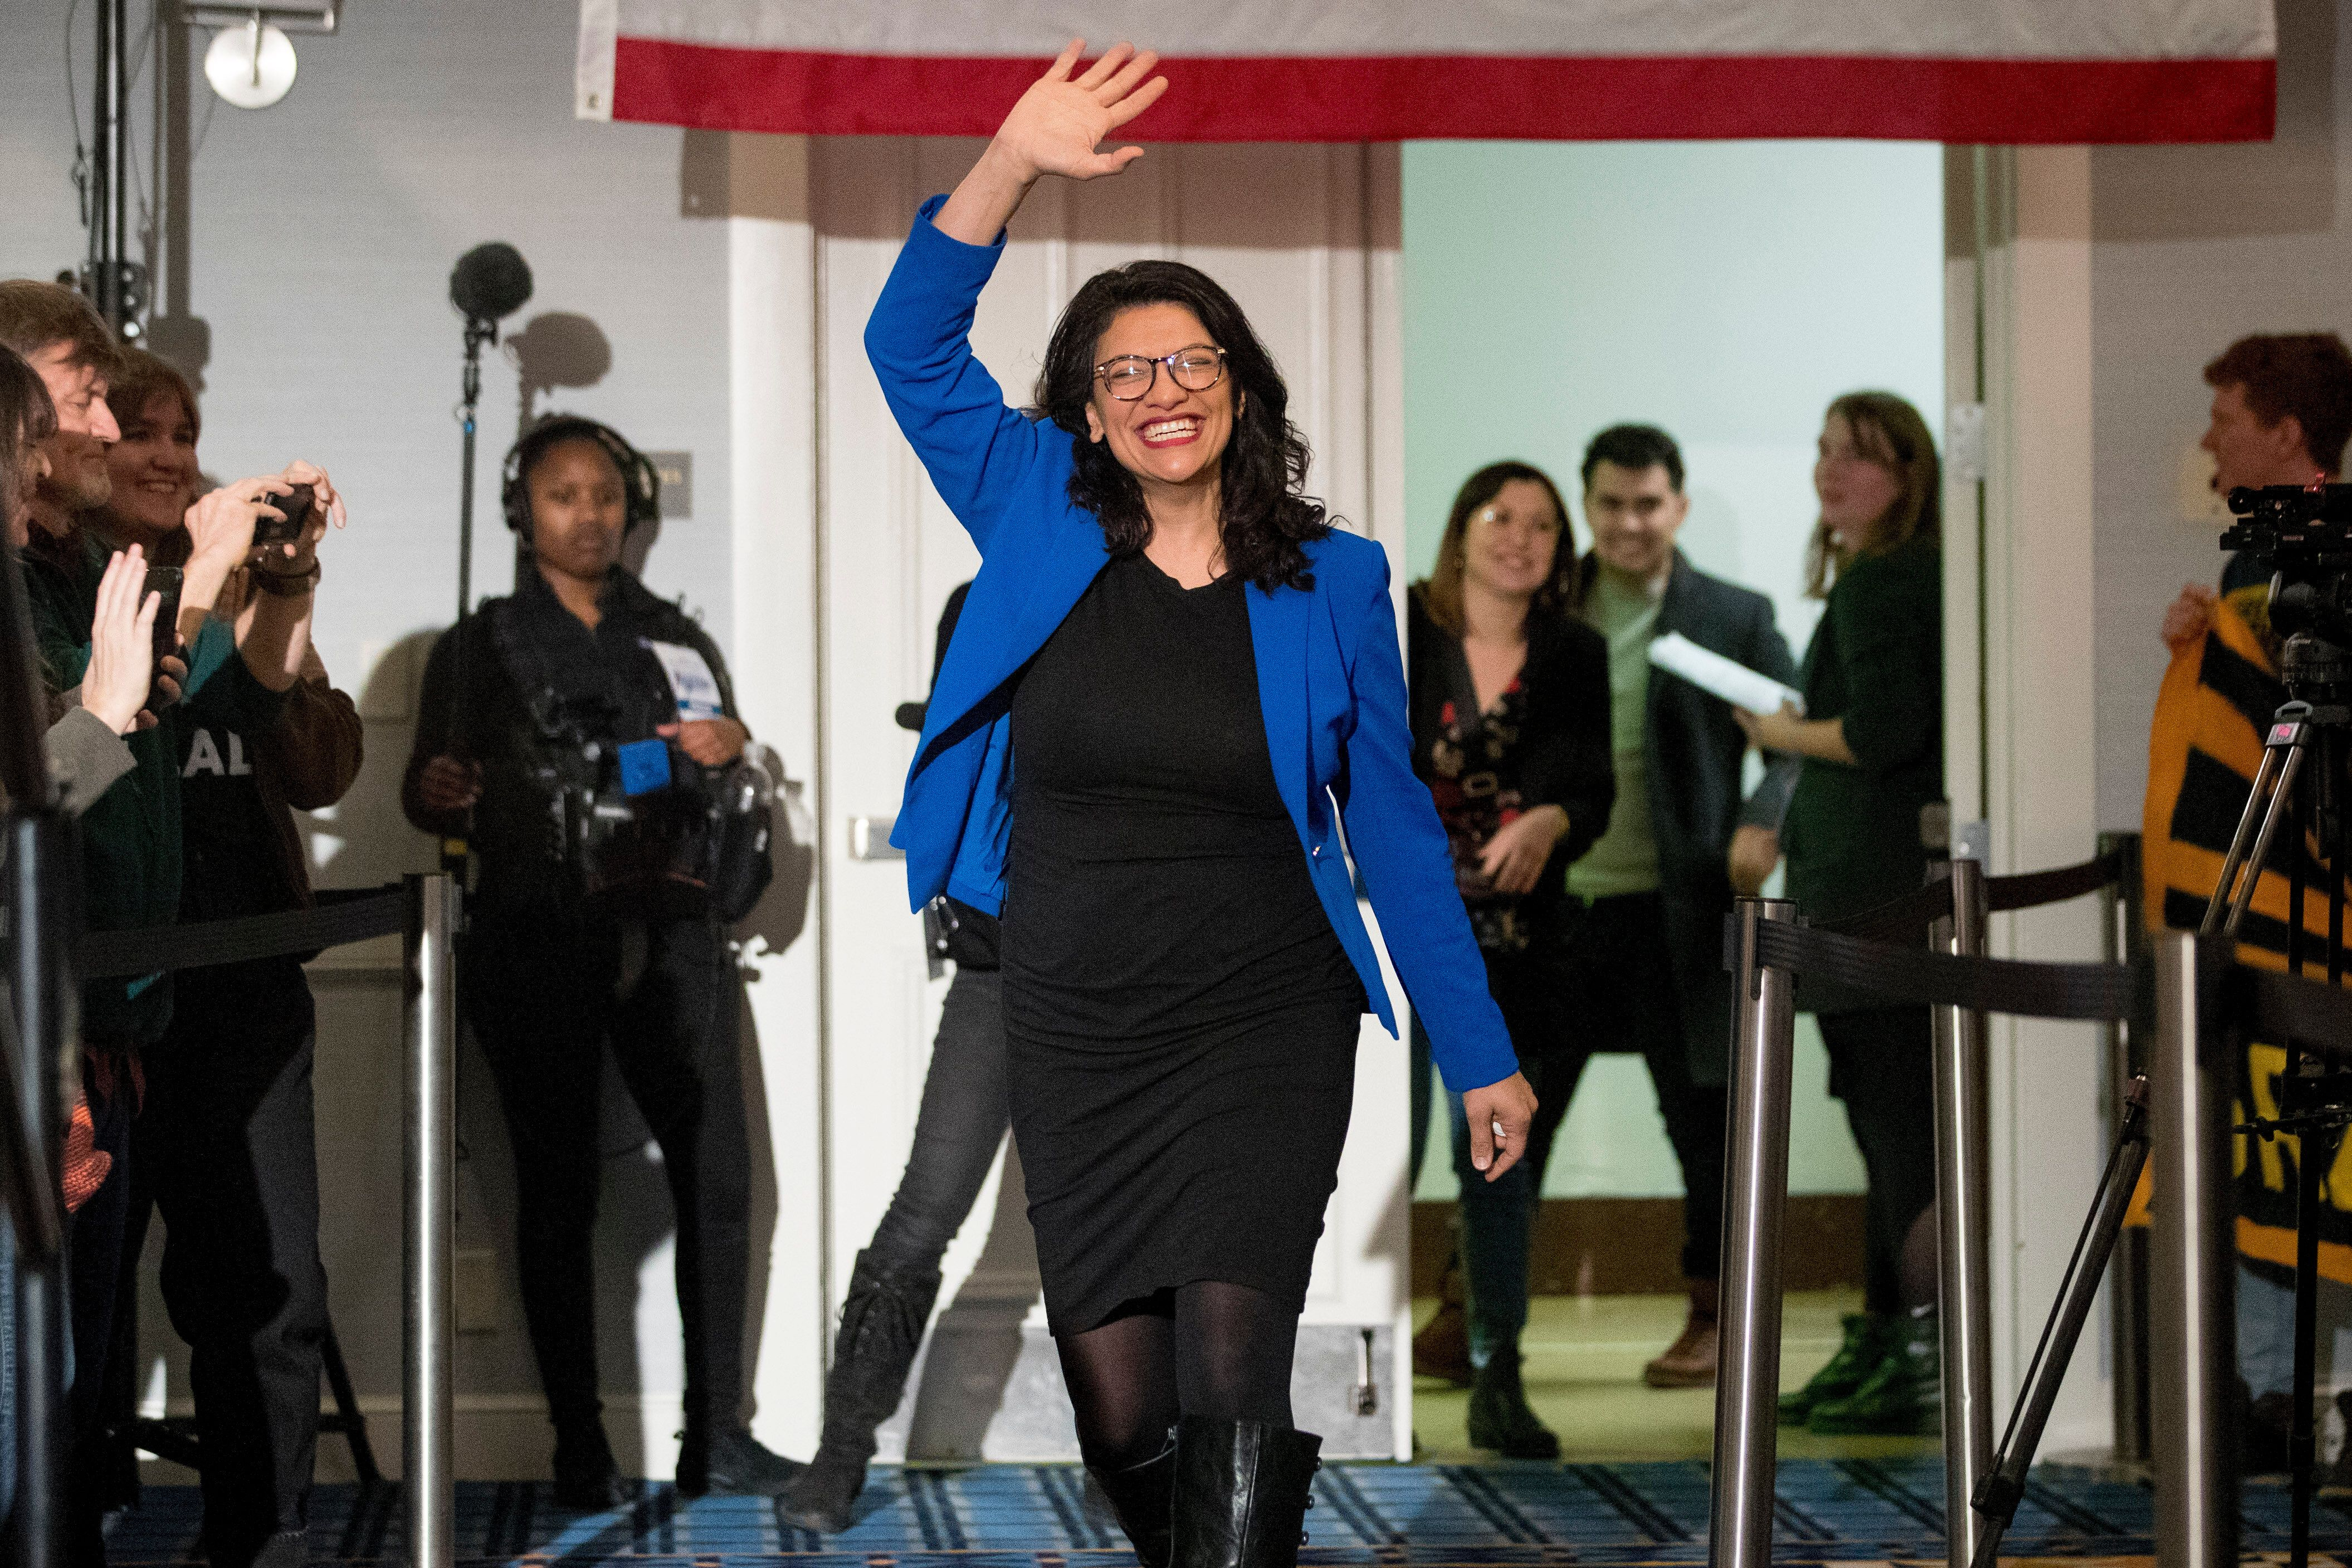 Rep. Rashida Tlaib (D-Mich.) became the first Palestinian American to be elected to Congress in 2018.